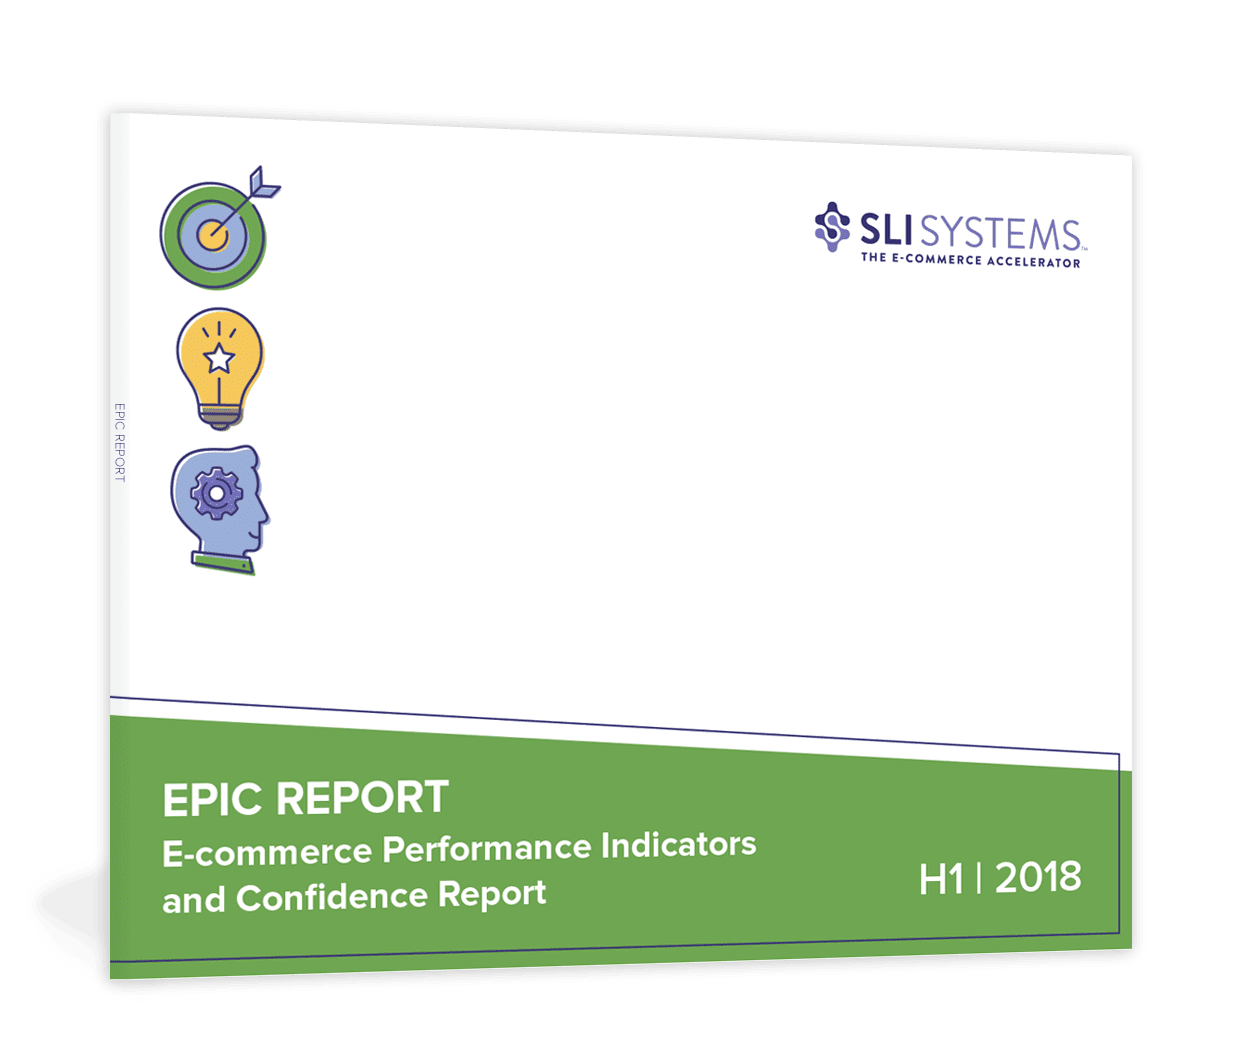 Ecommerce Research - EPIC Report | SLI Systems